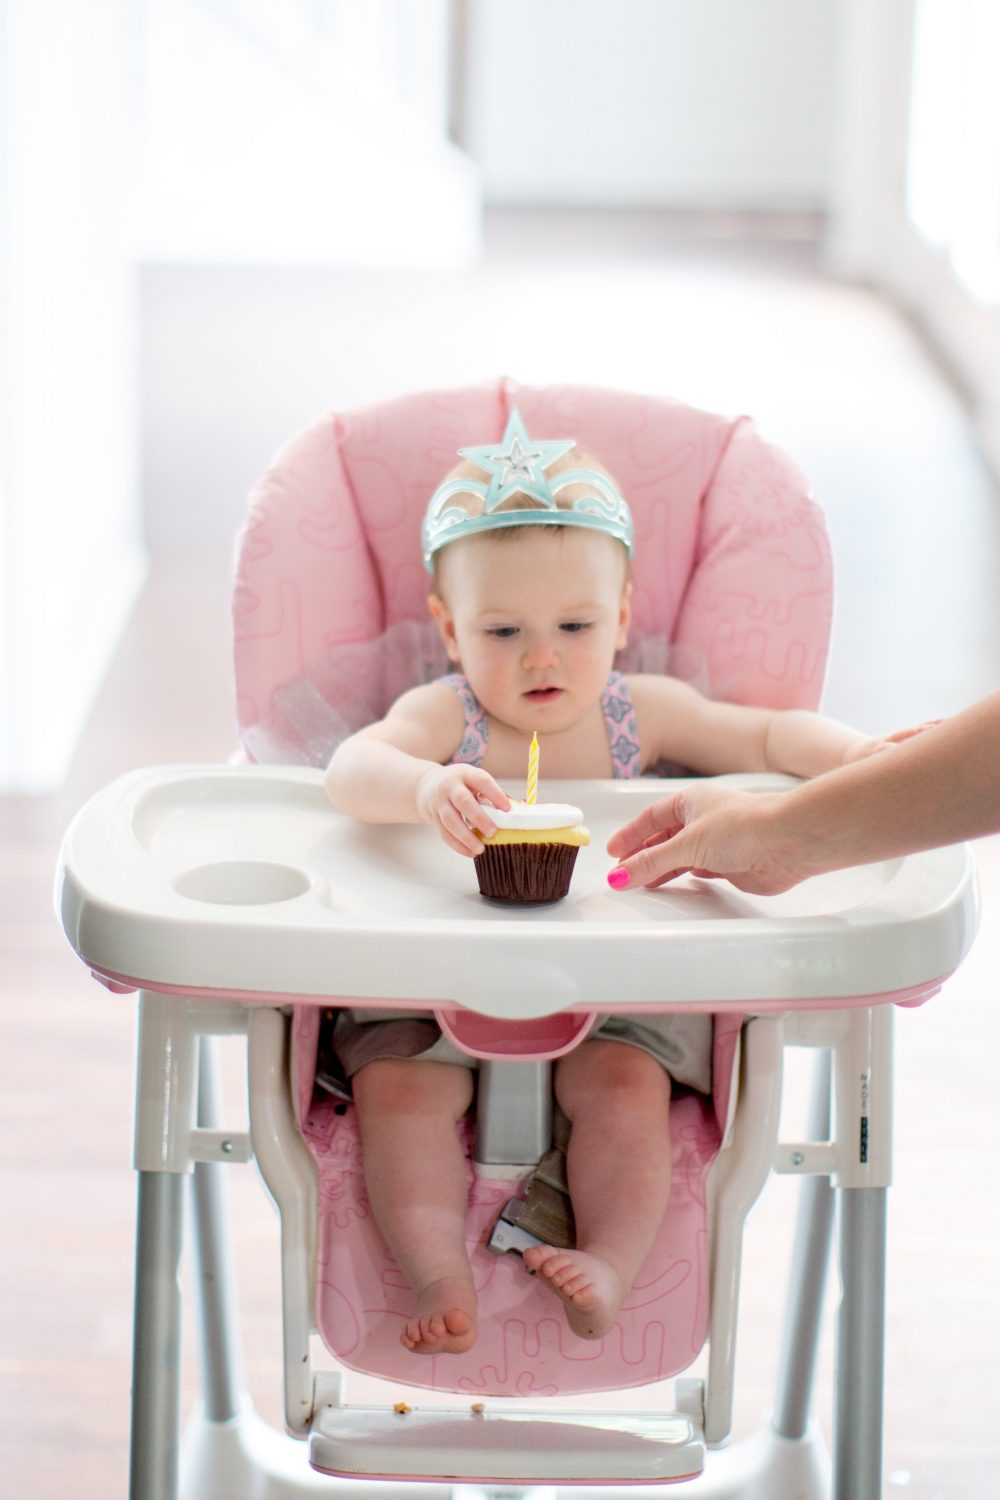 Cute baby eating a cupcake: Why you should switch to Dr. Browns Bottles